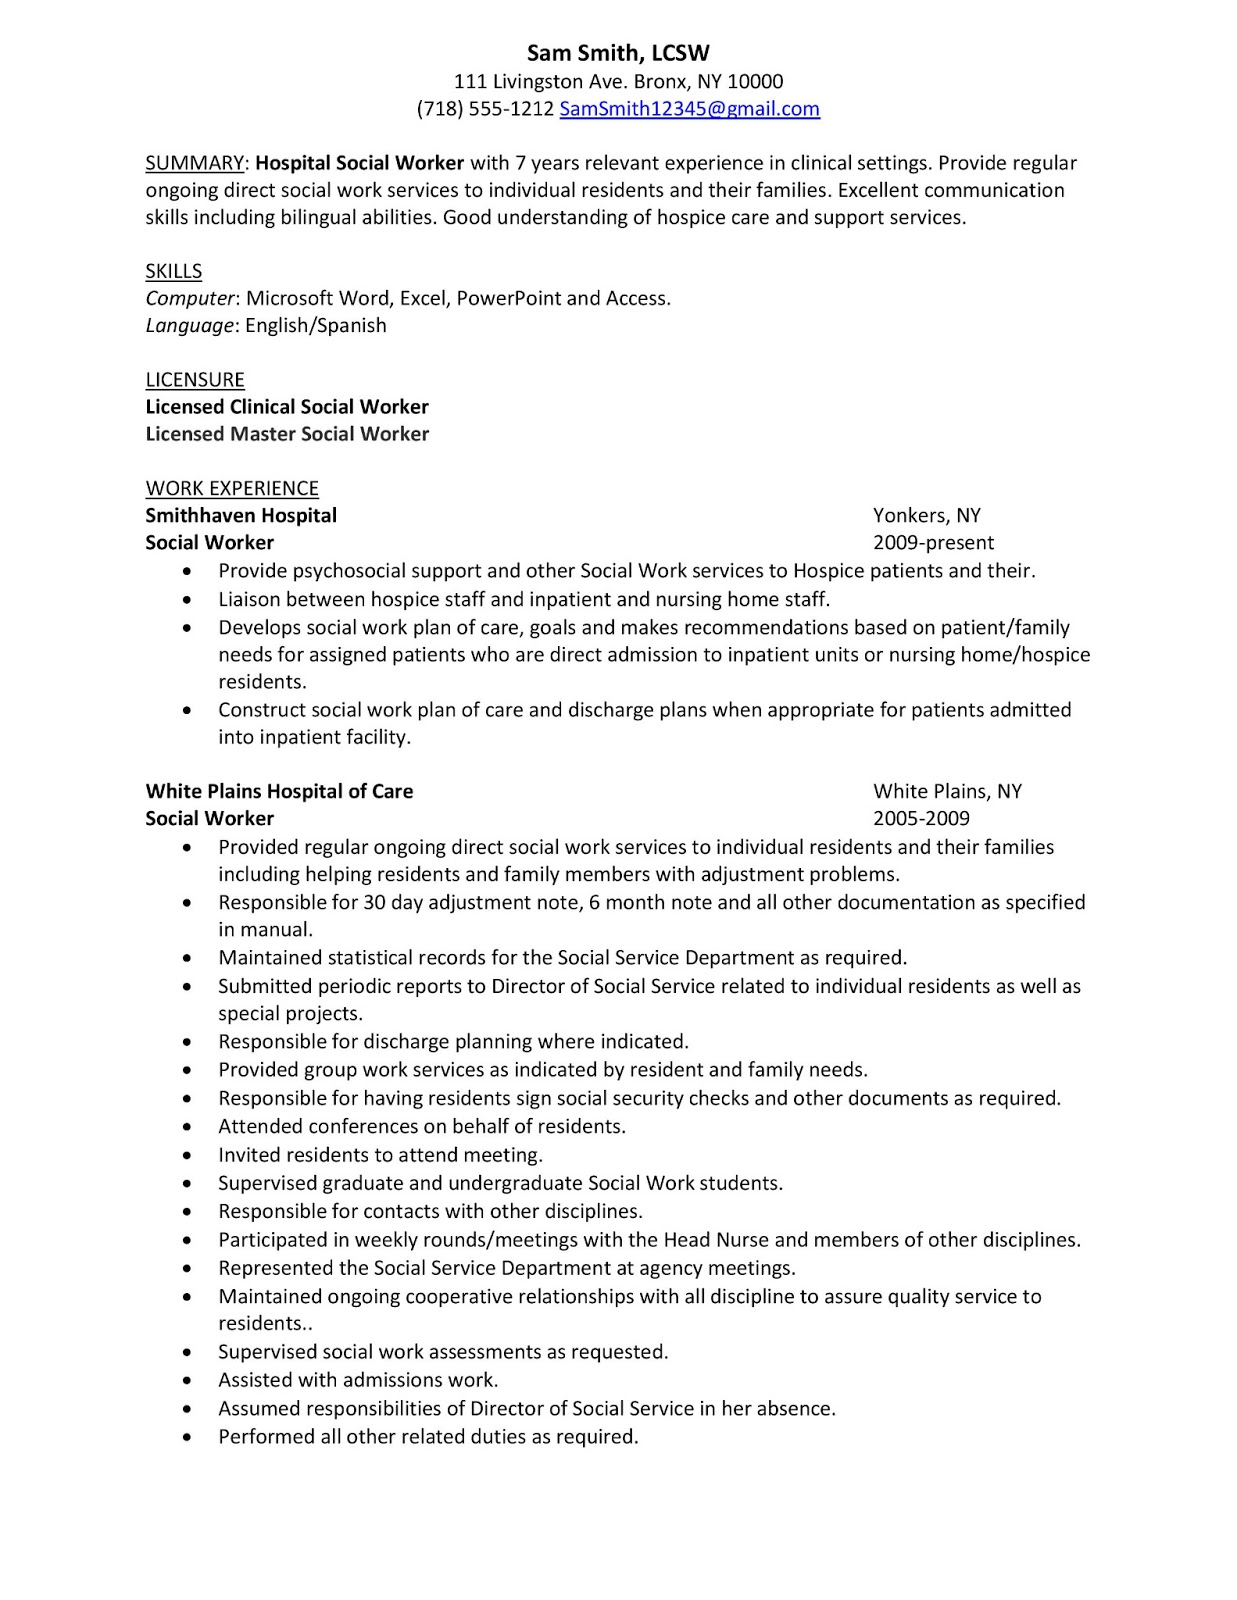 High Quality Sample Resume: Hospital Social Worker Throughout Objective For Social Work Resume